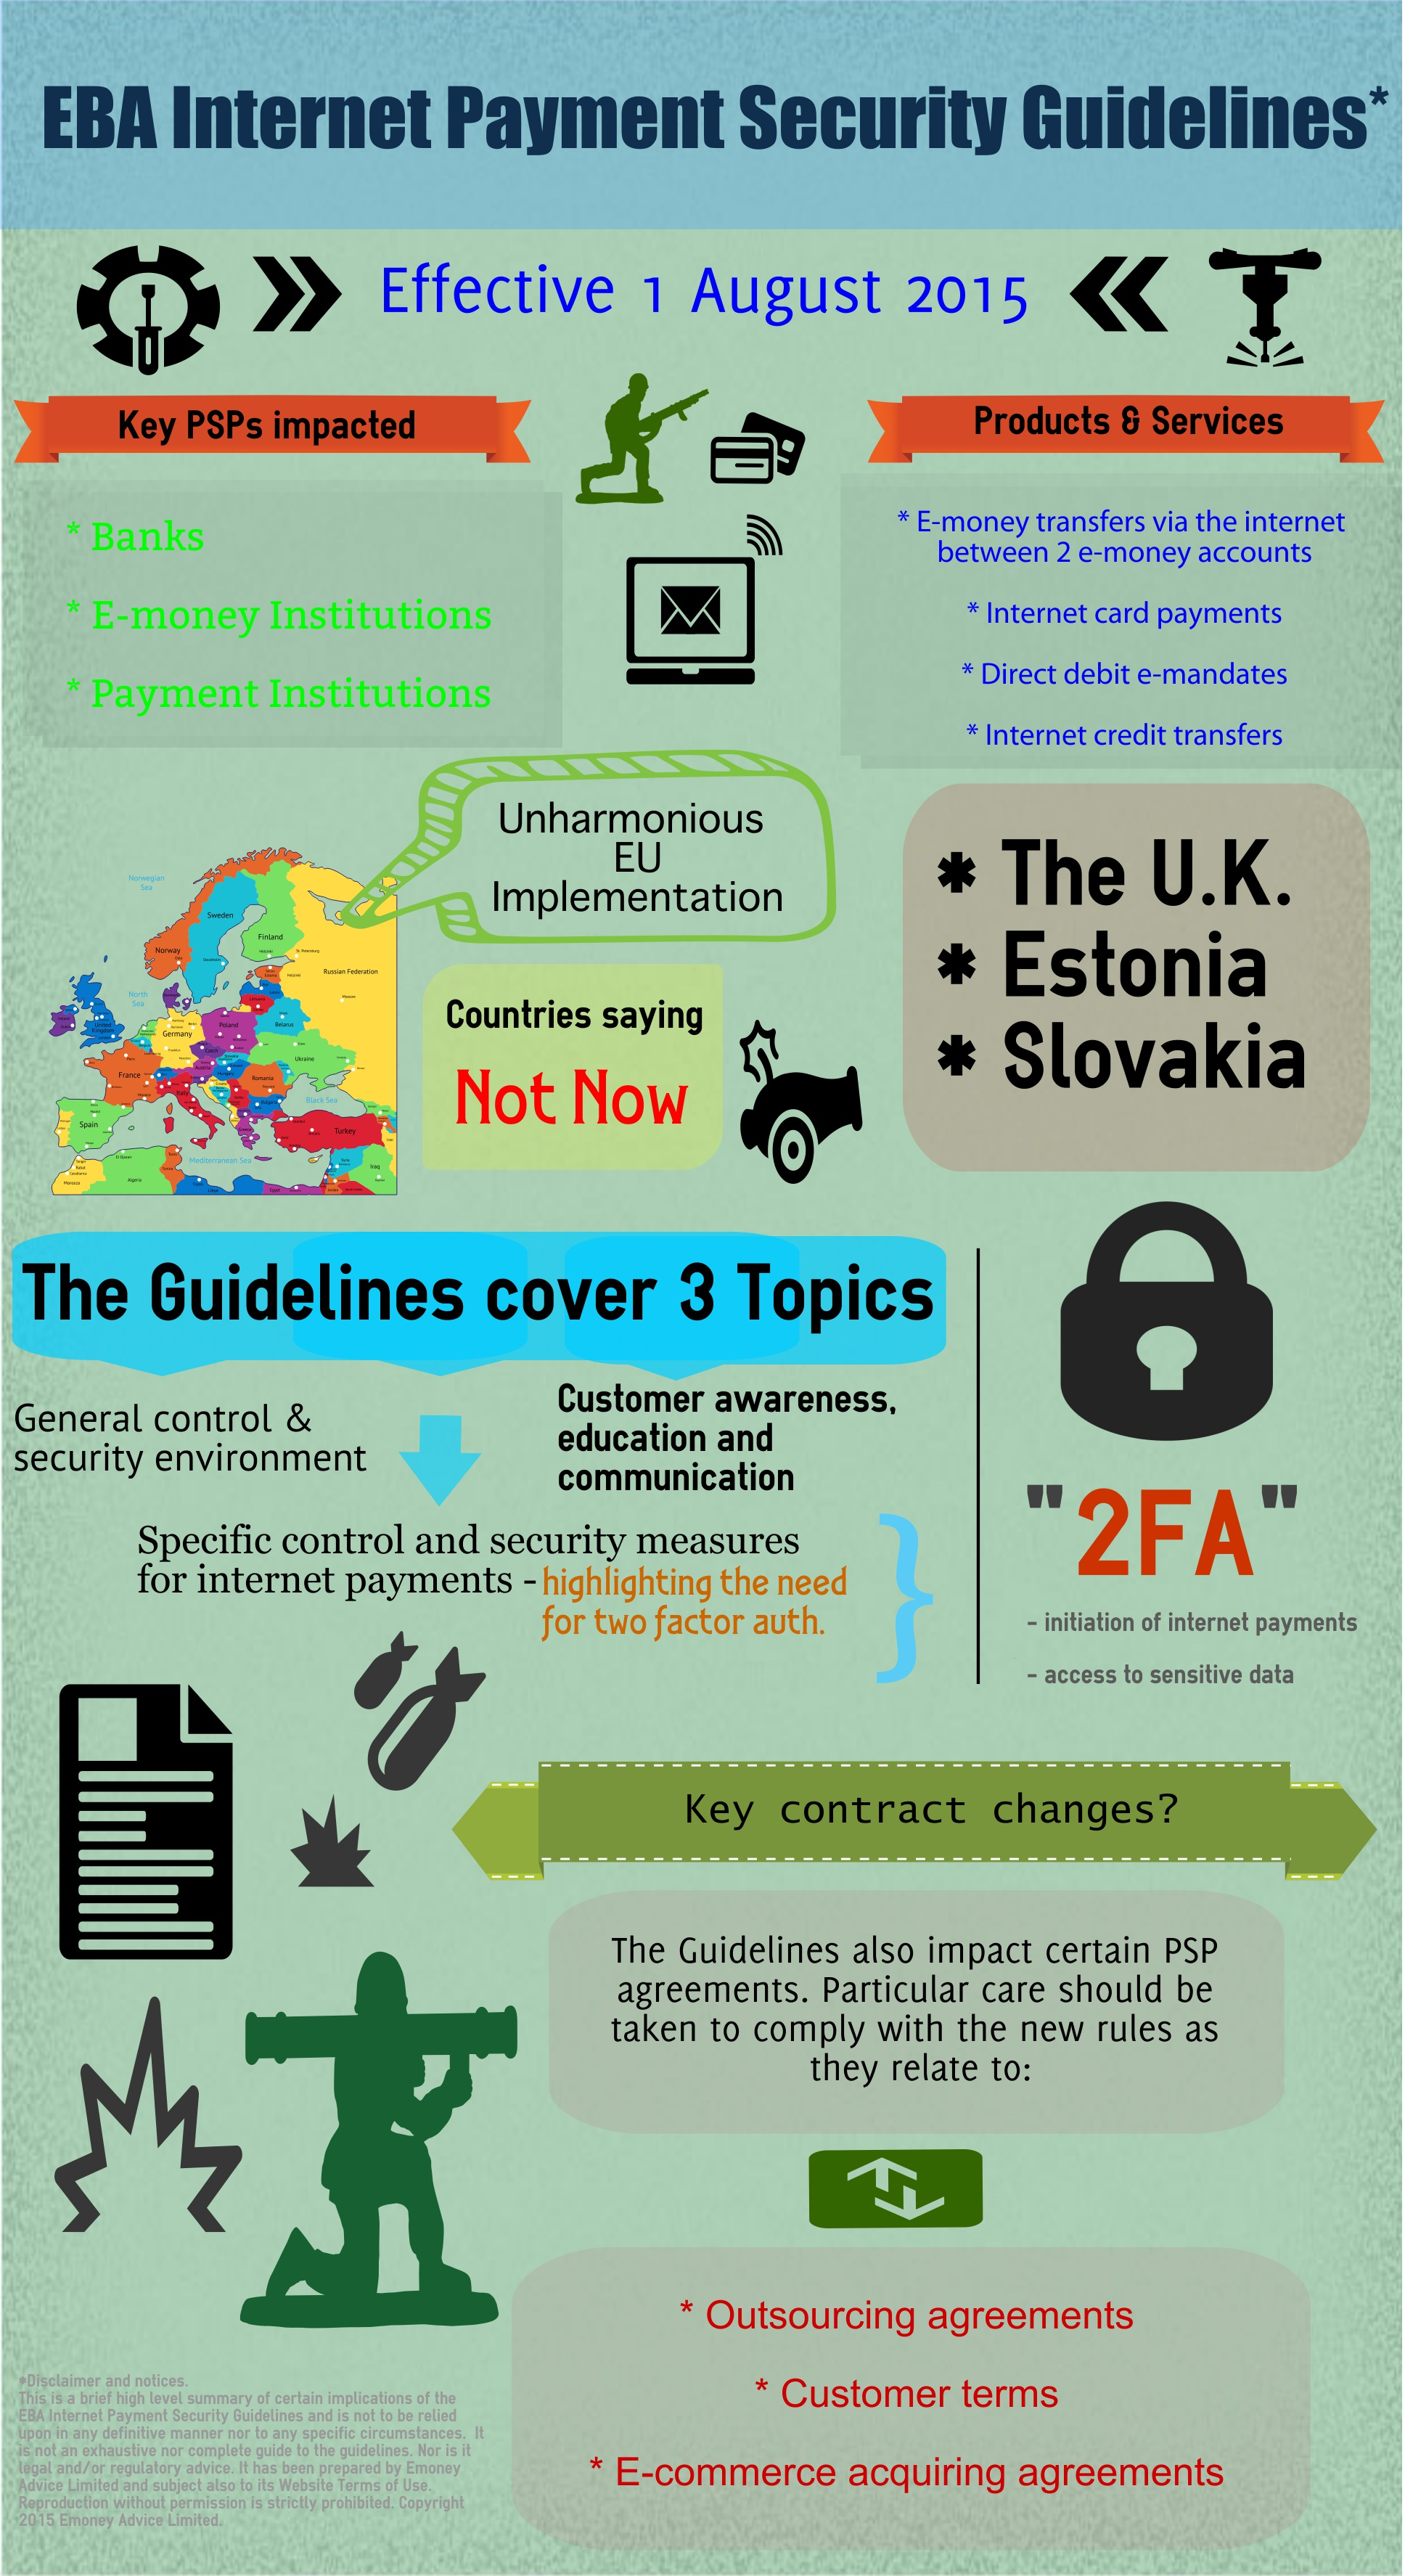 EBA Internet Payment Security Guidelines infographic